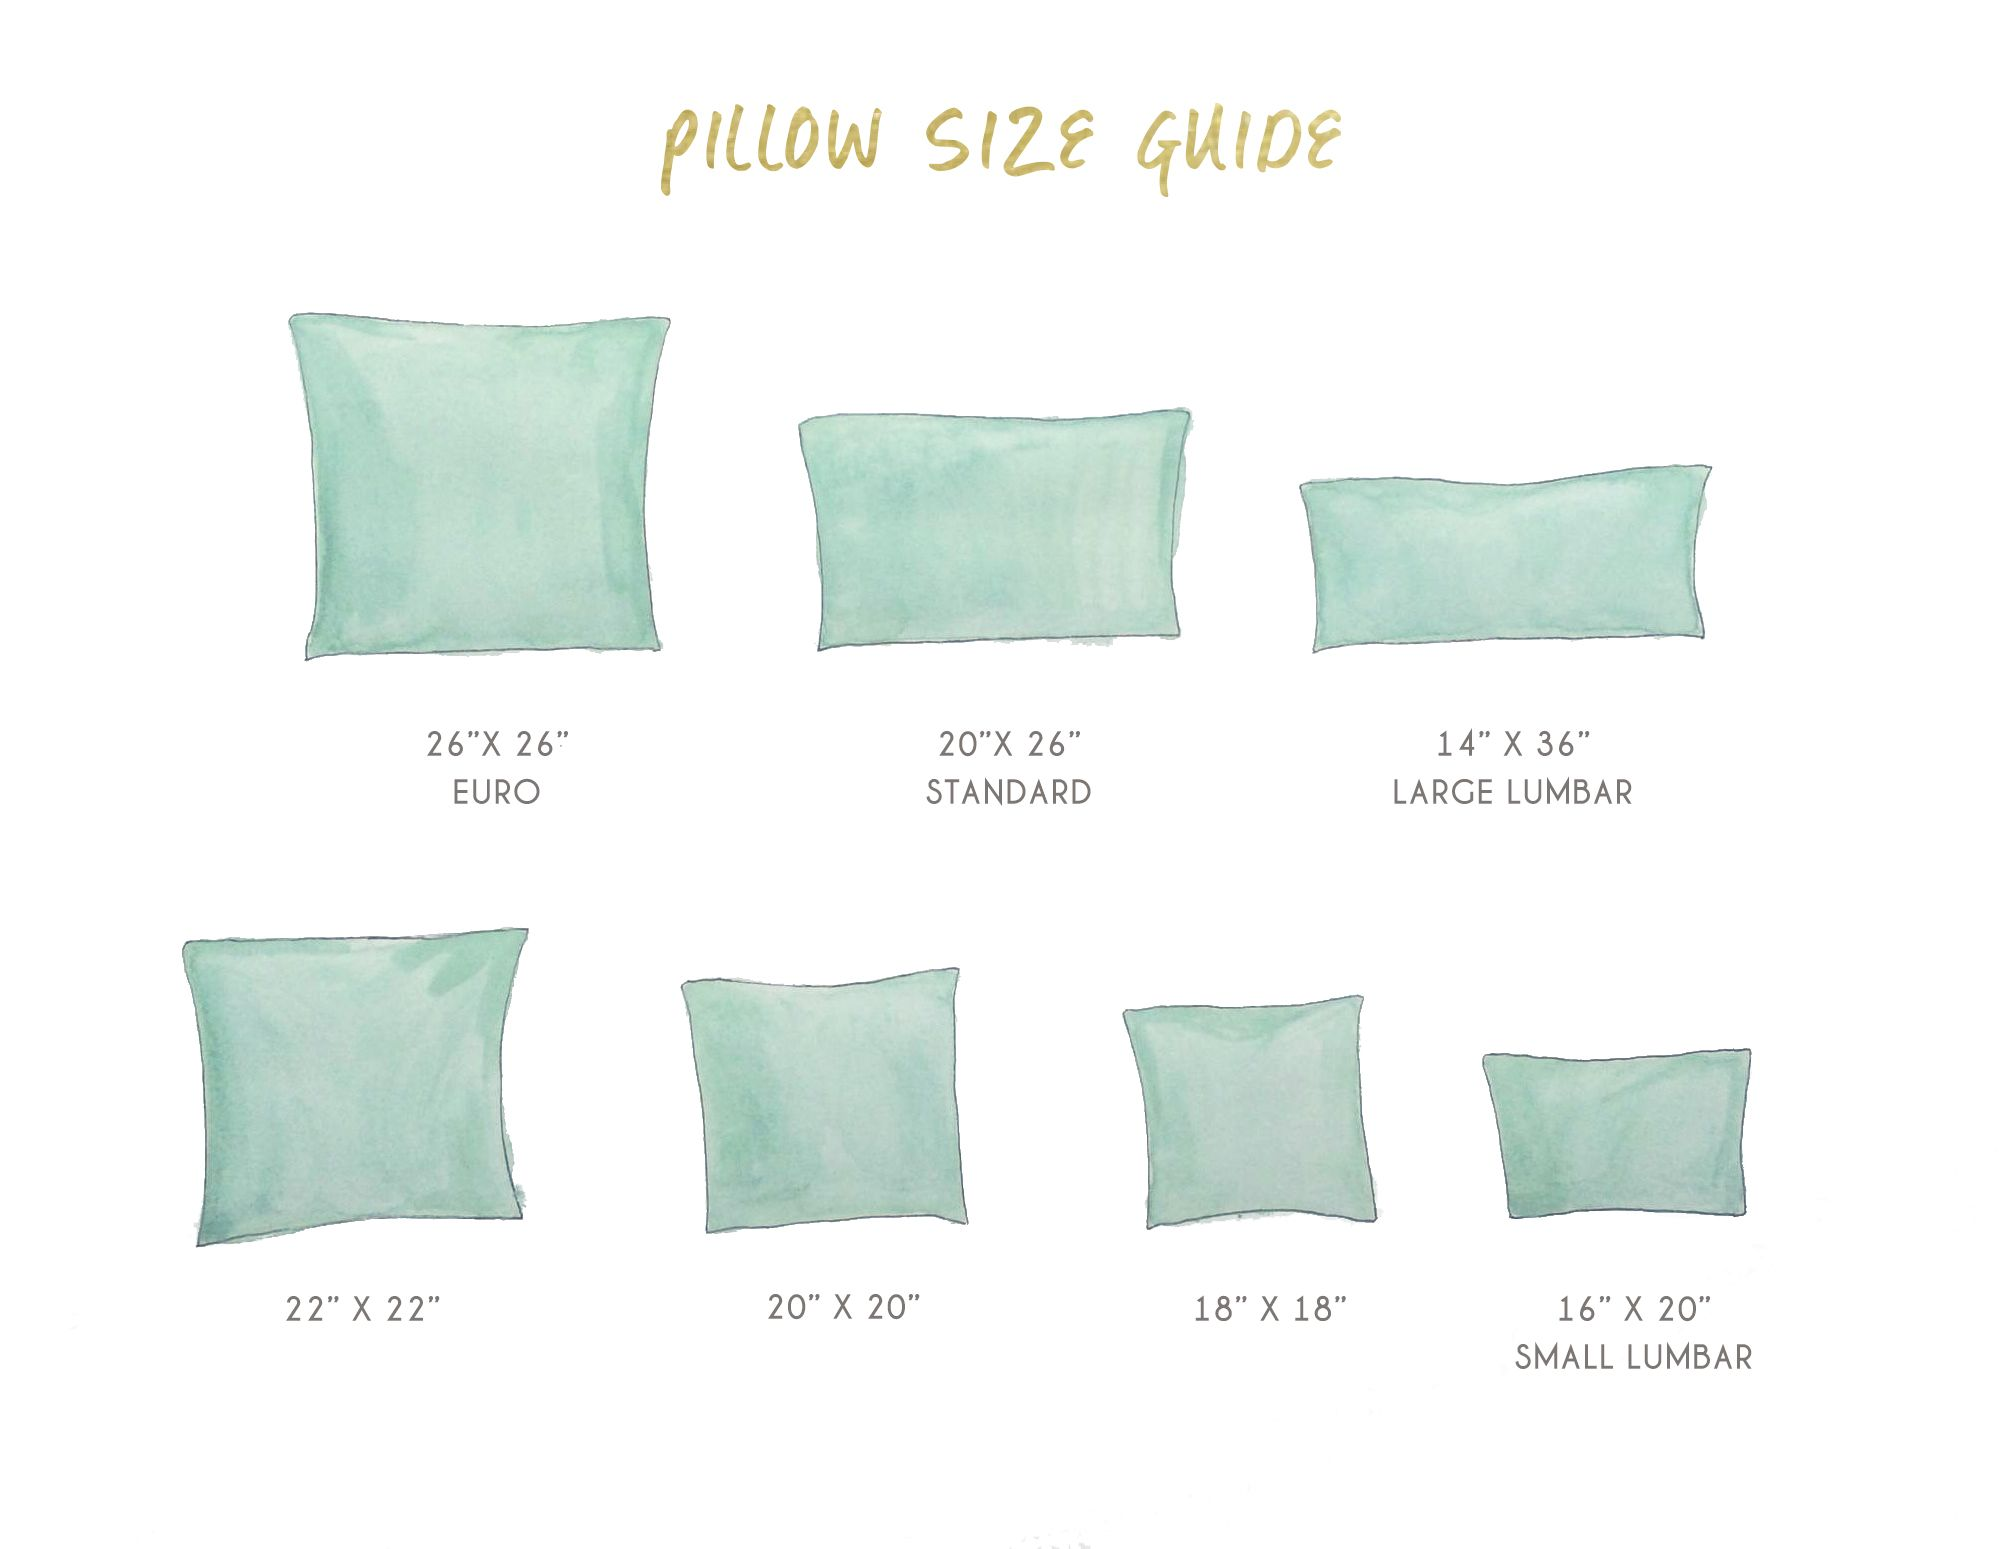 How Many Throw Pillows On A Sectional Couch : Pillow Sizes For Sofa Pillow Sizes For Sofa Couch Katakori Sets 8188 - TheSofa